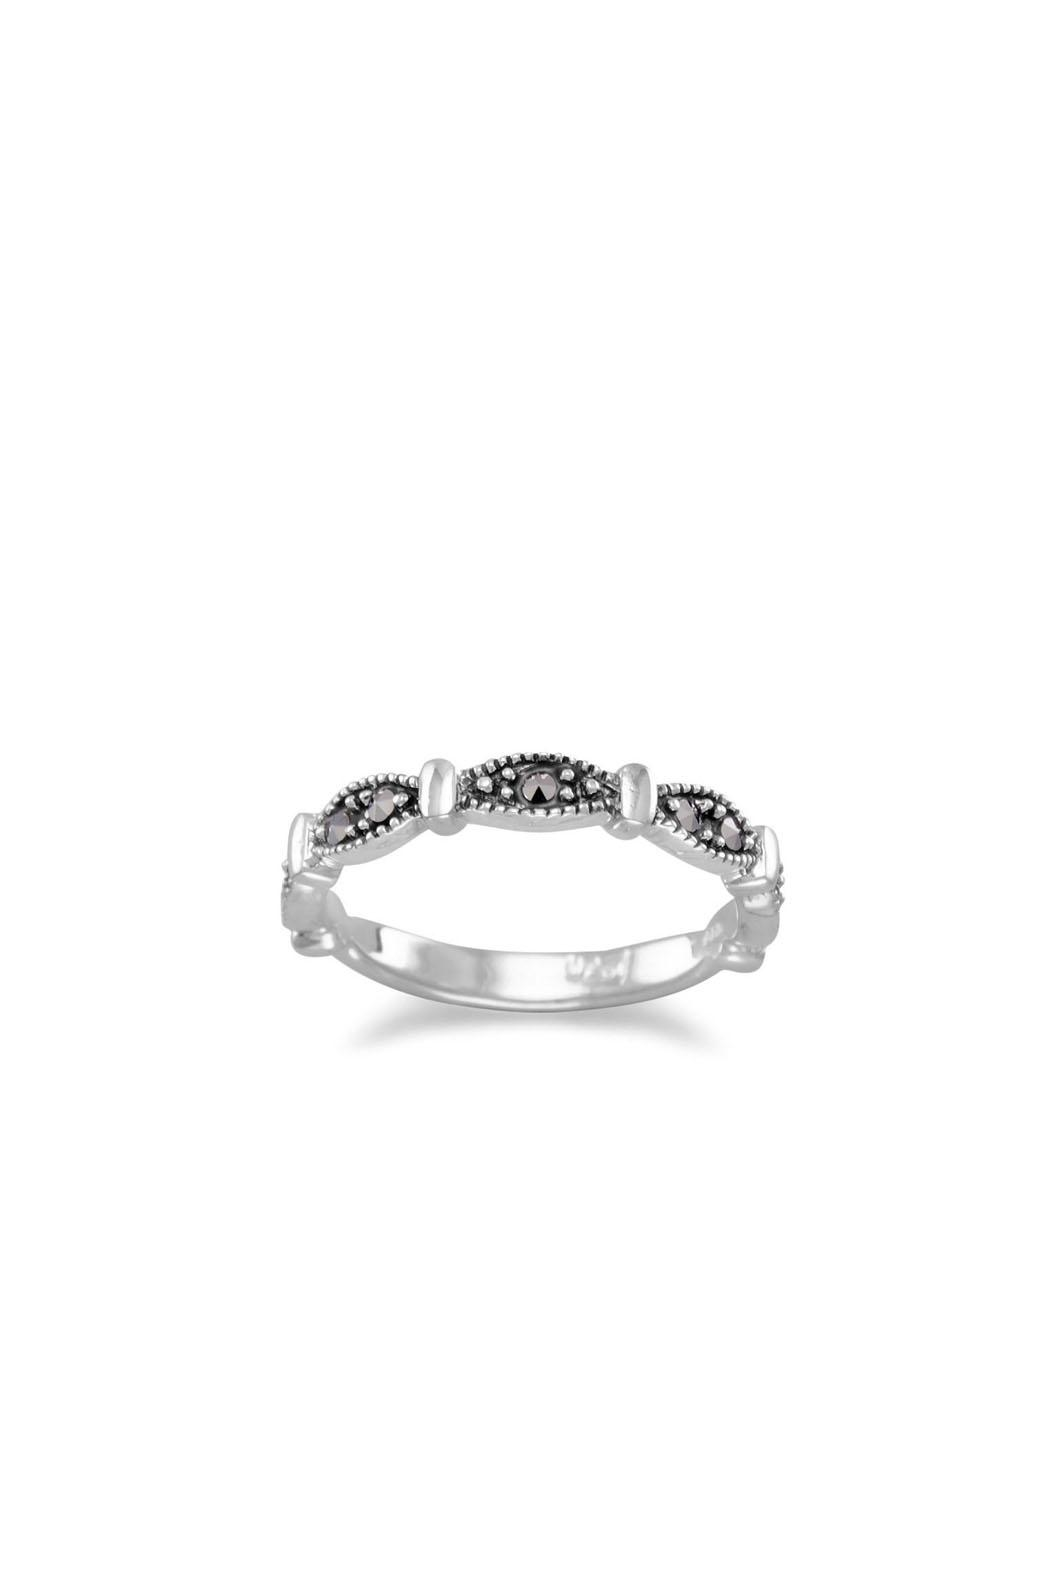 Wild Lilies Jewelry  Marquise Marcasite Band - Main Image